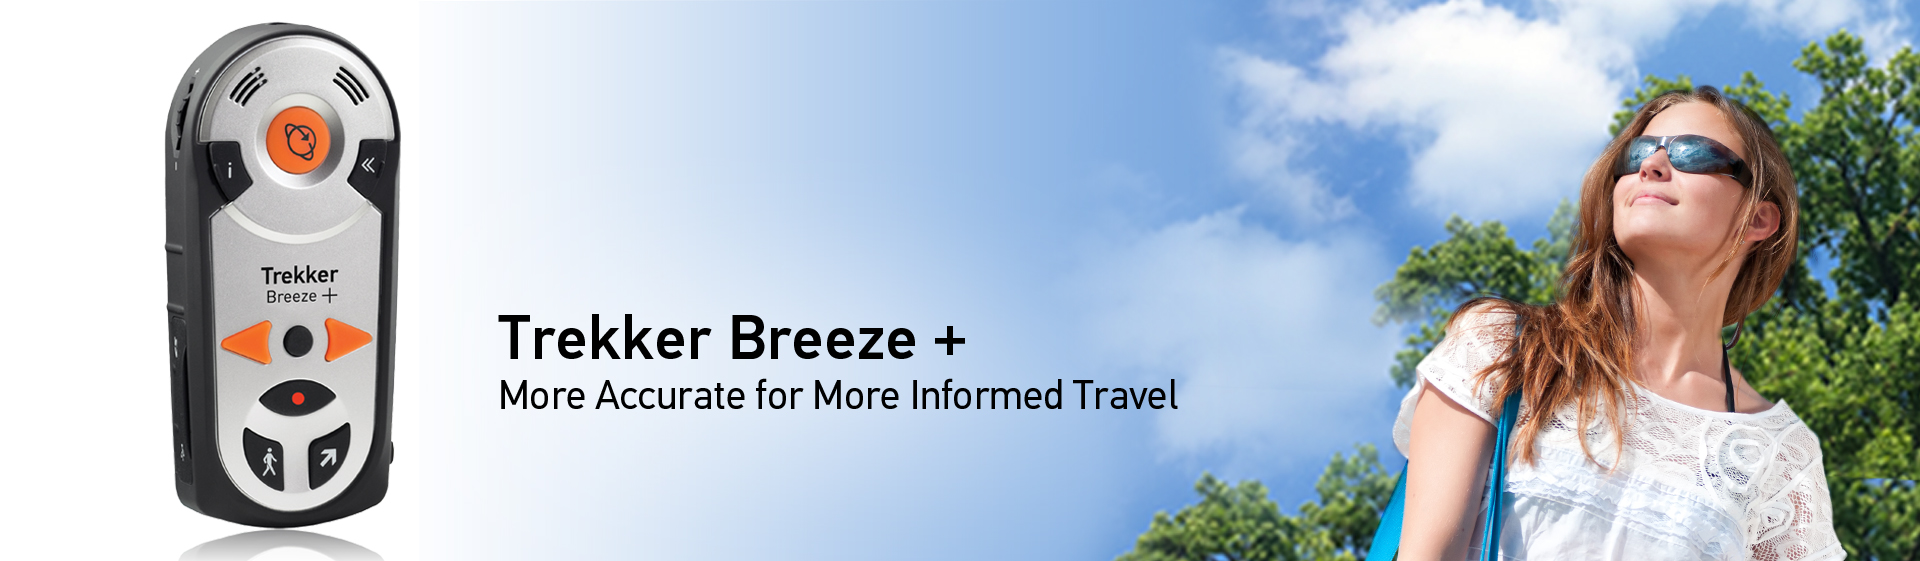 Breeze+ Now available